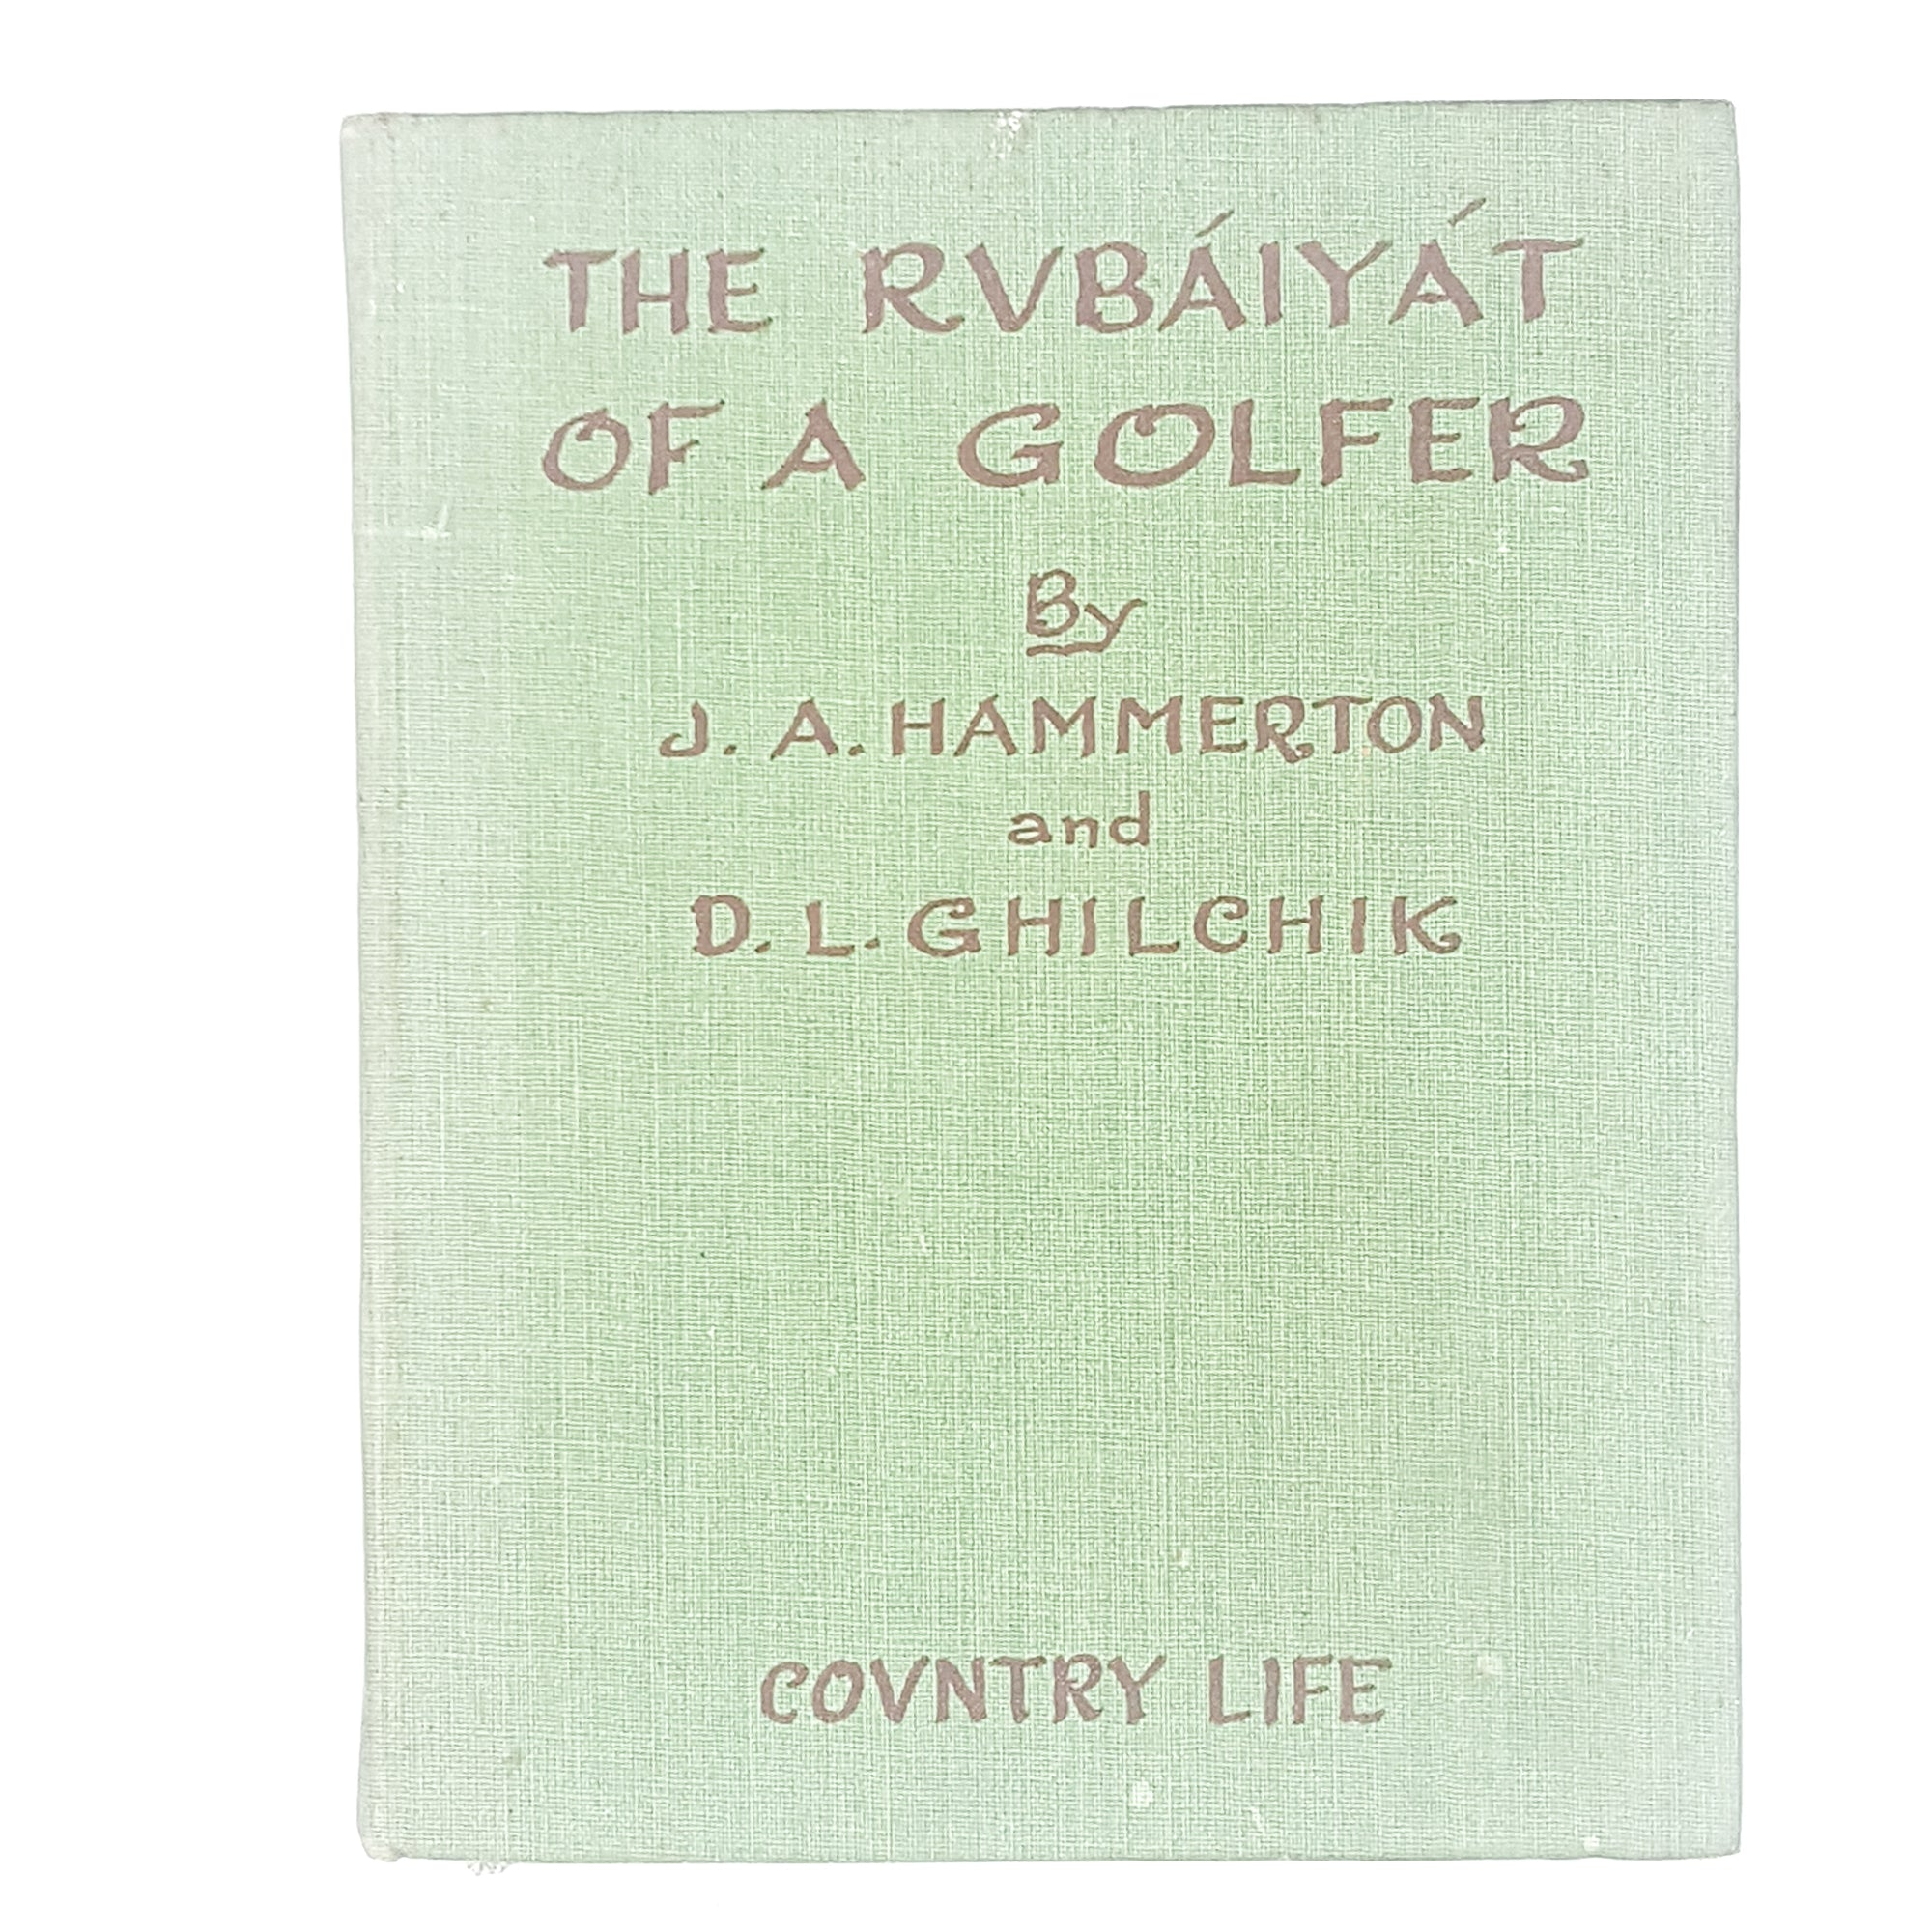 The Rubaiyat of a Golfer by J. A. Hammerton and D. L. Ghilchik 1946